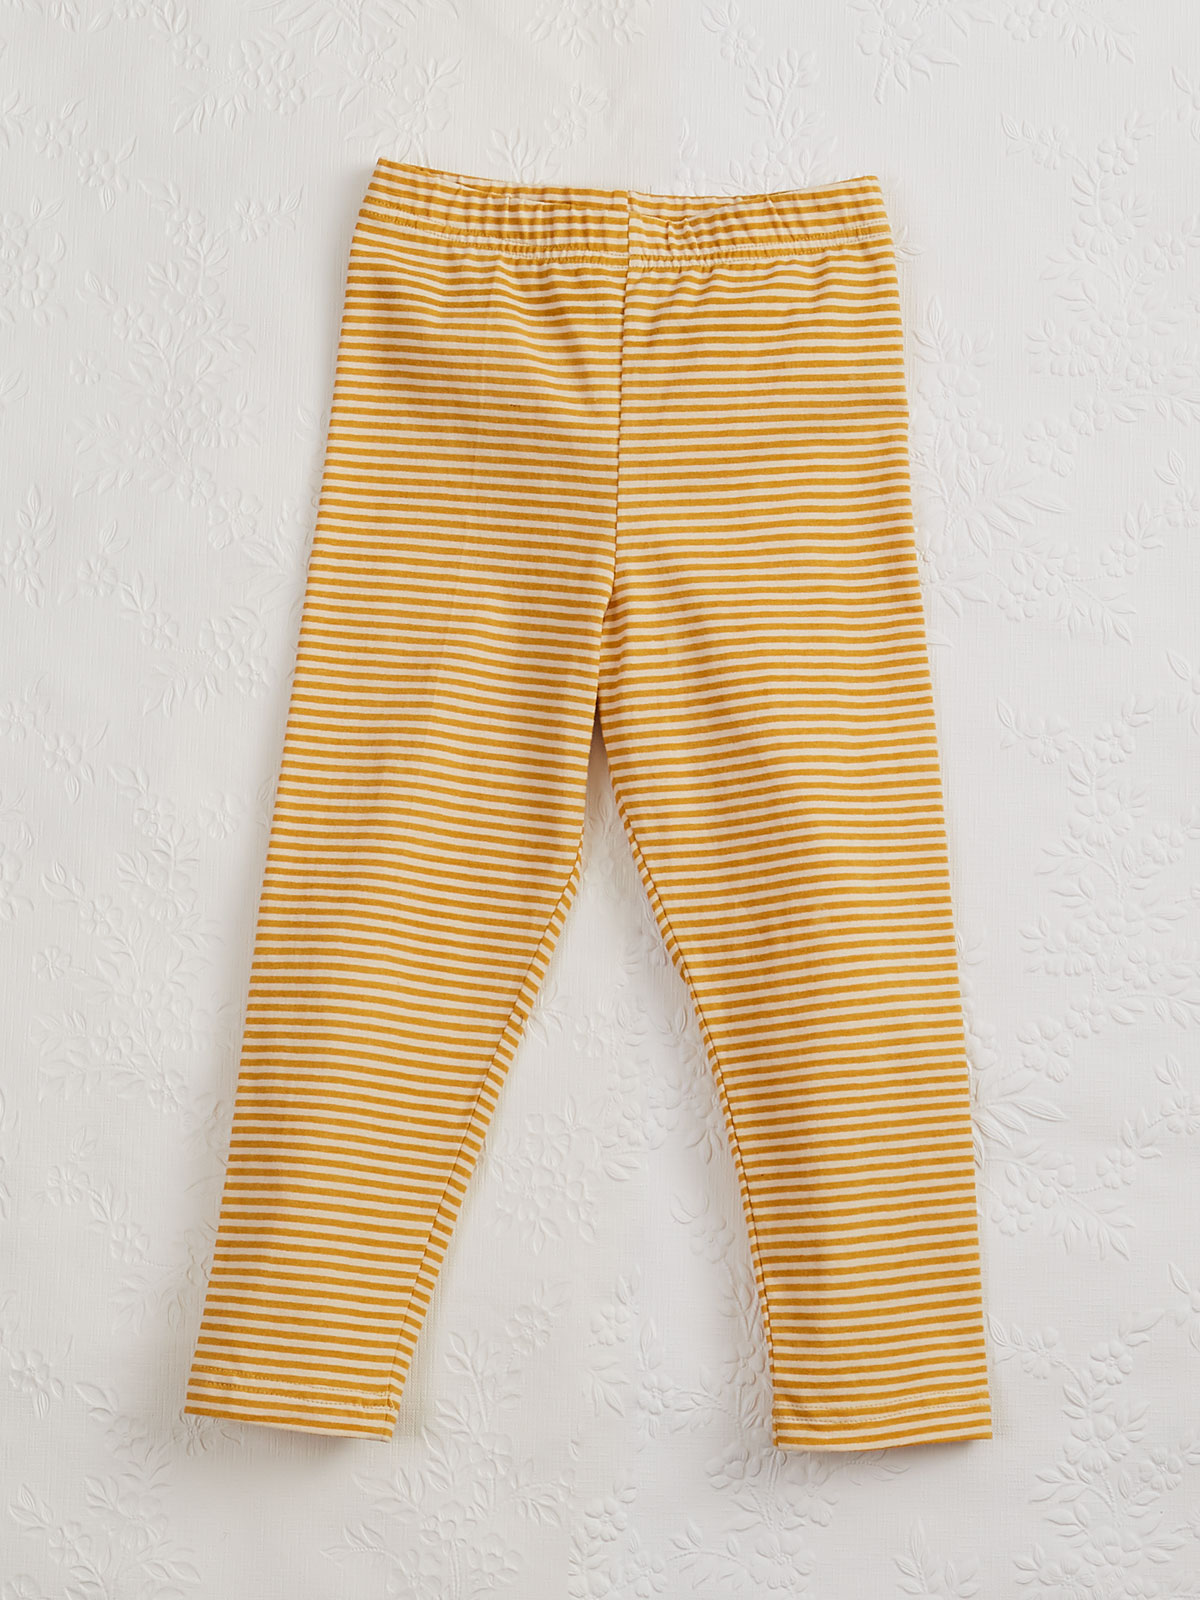 Sandstorm Stripe Girls Pant